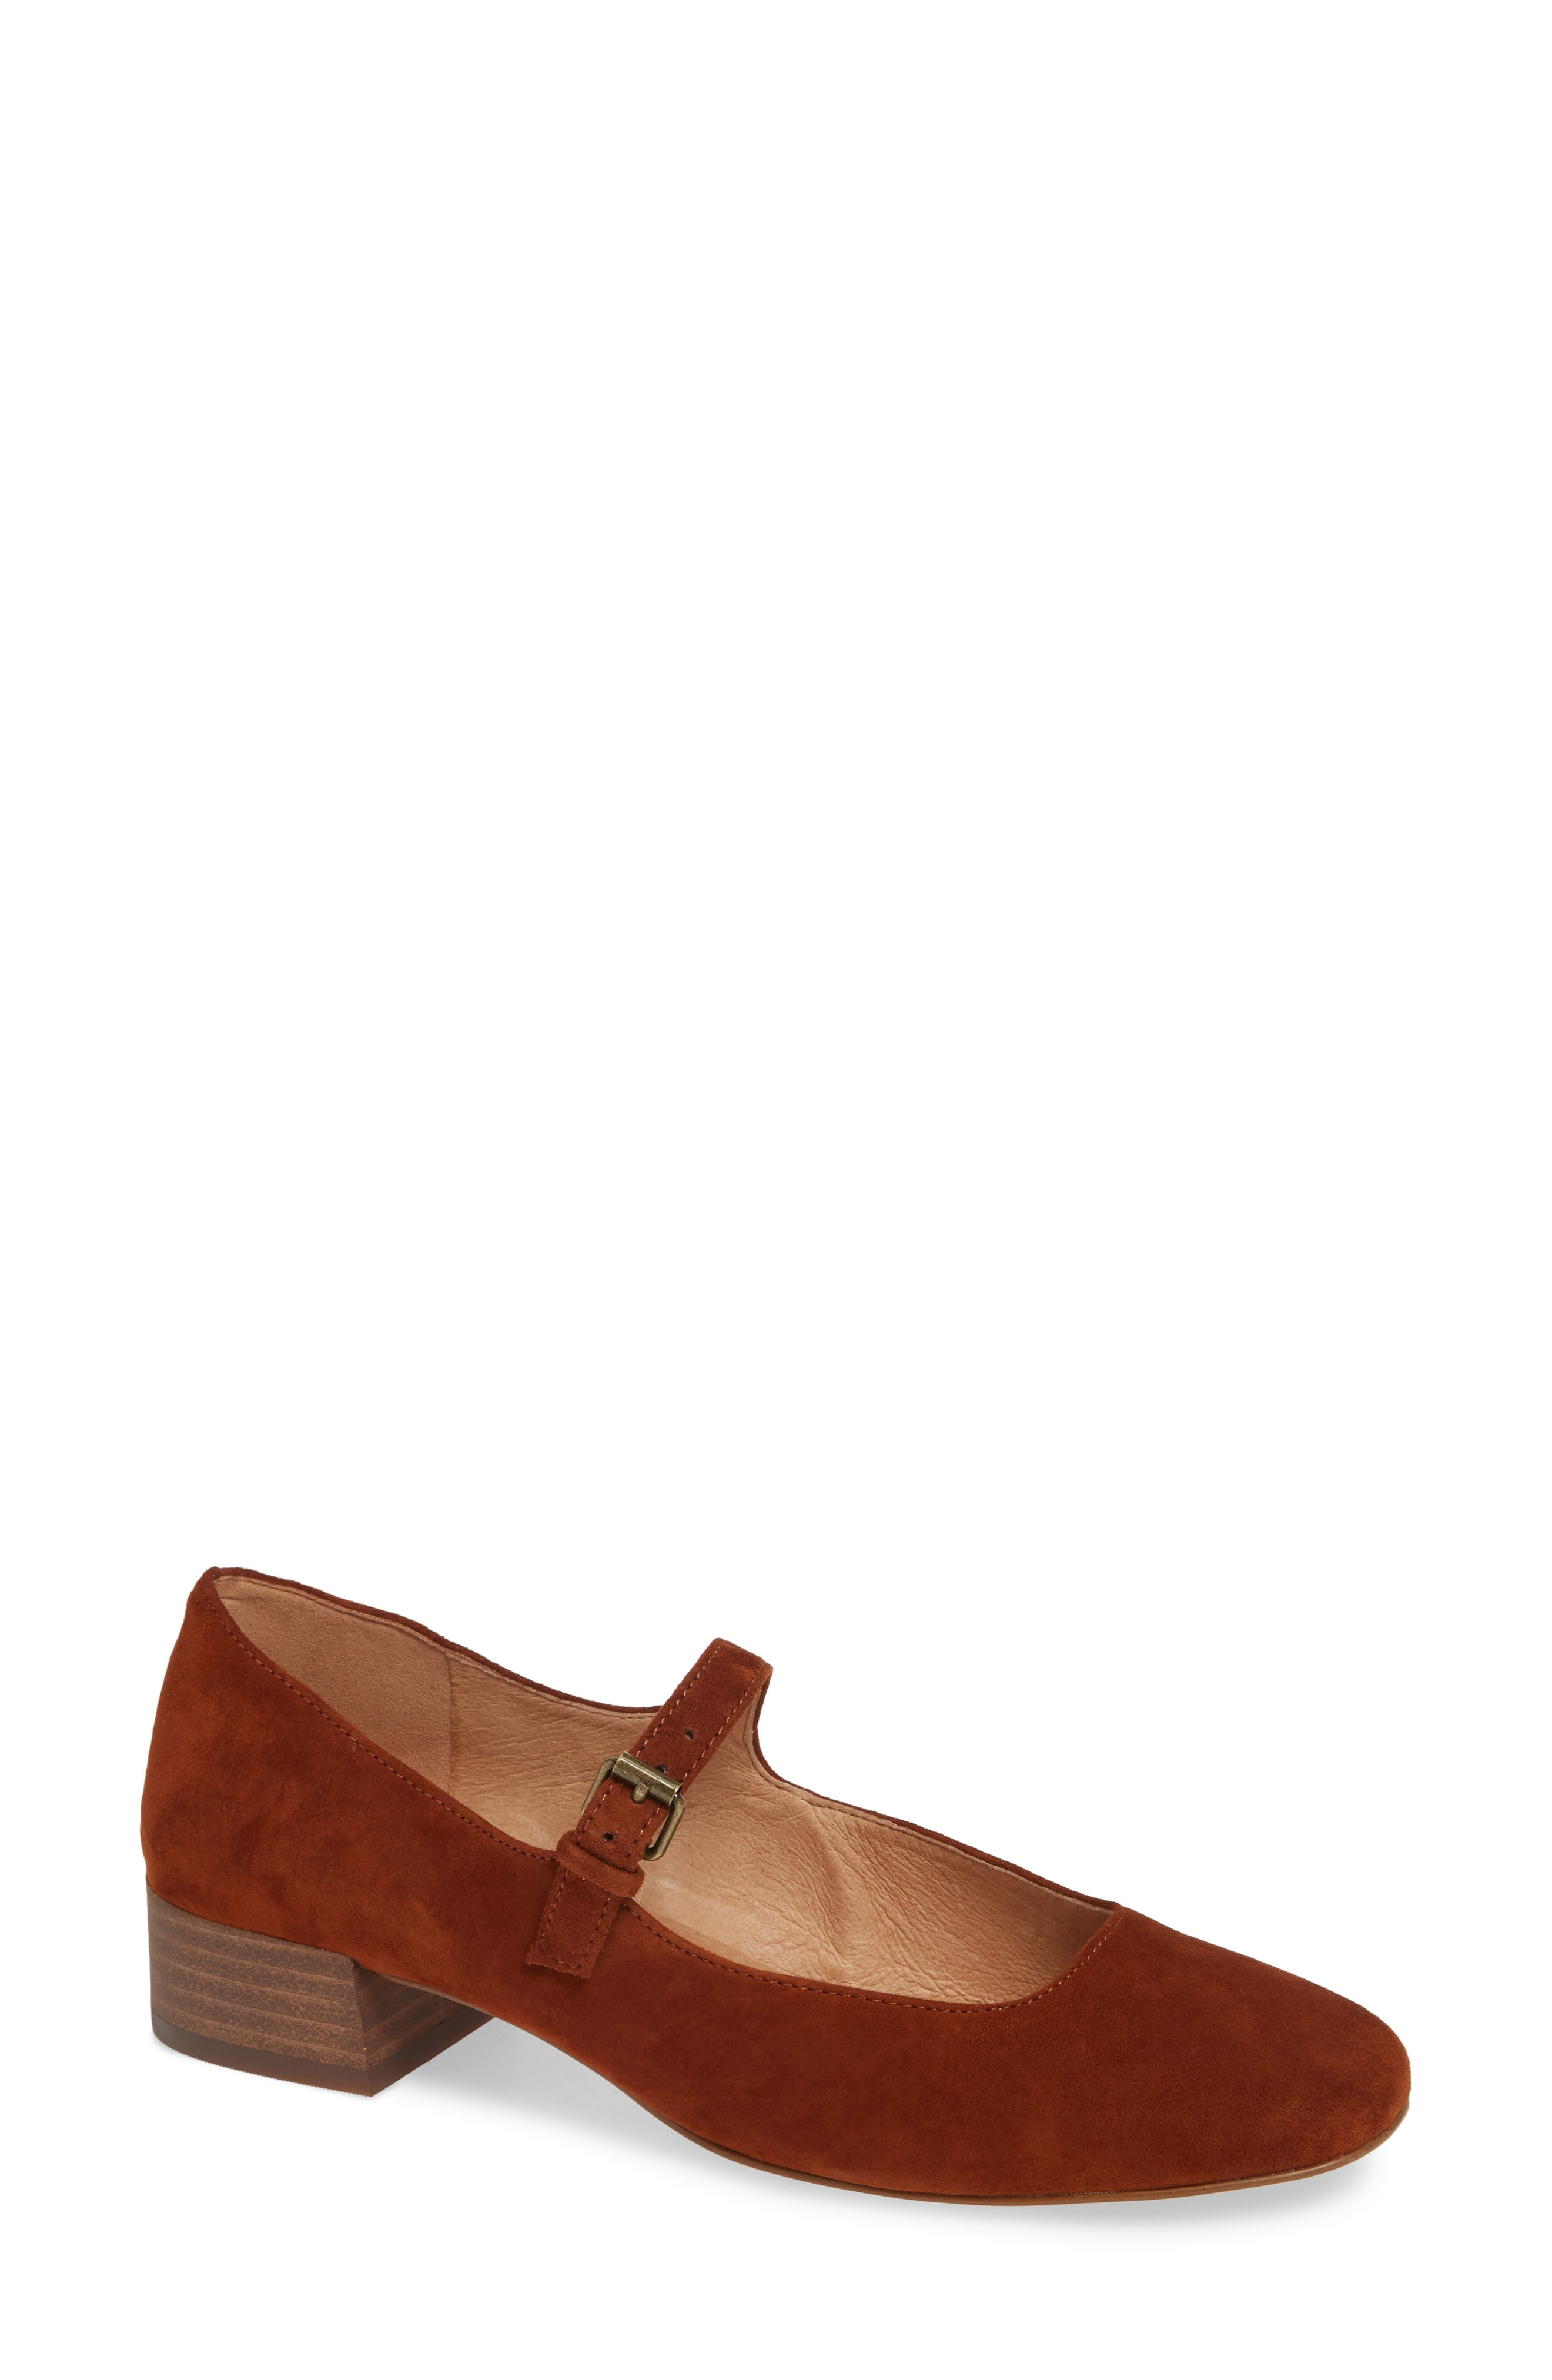 Madewell The Delilah Mary Jane Pump (Women)